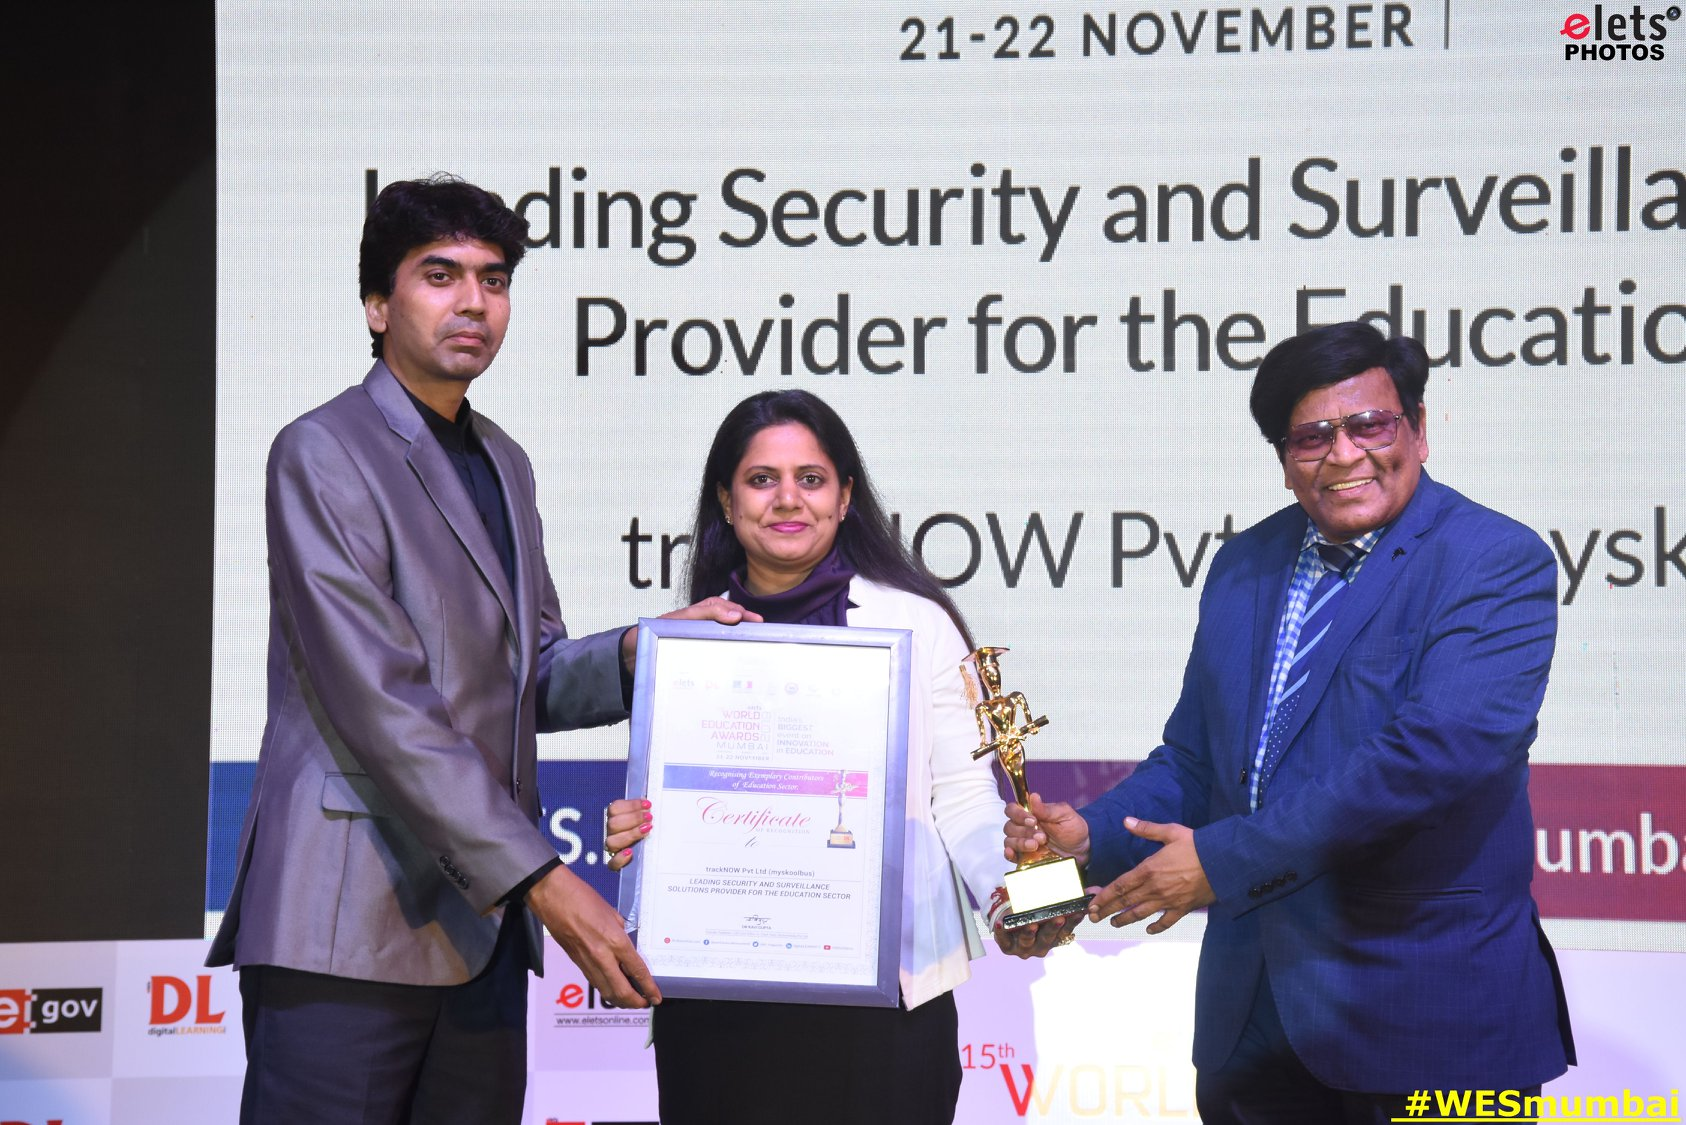 Leading Security and Surveillance Solution Provider for the Education Sector - World Education Summit Mumbai 2019